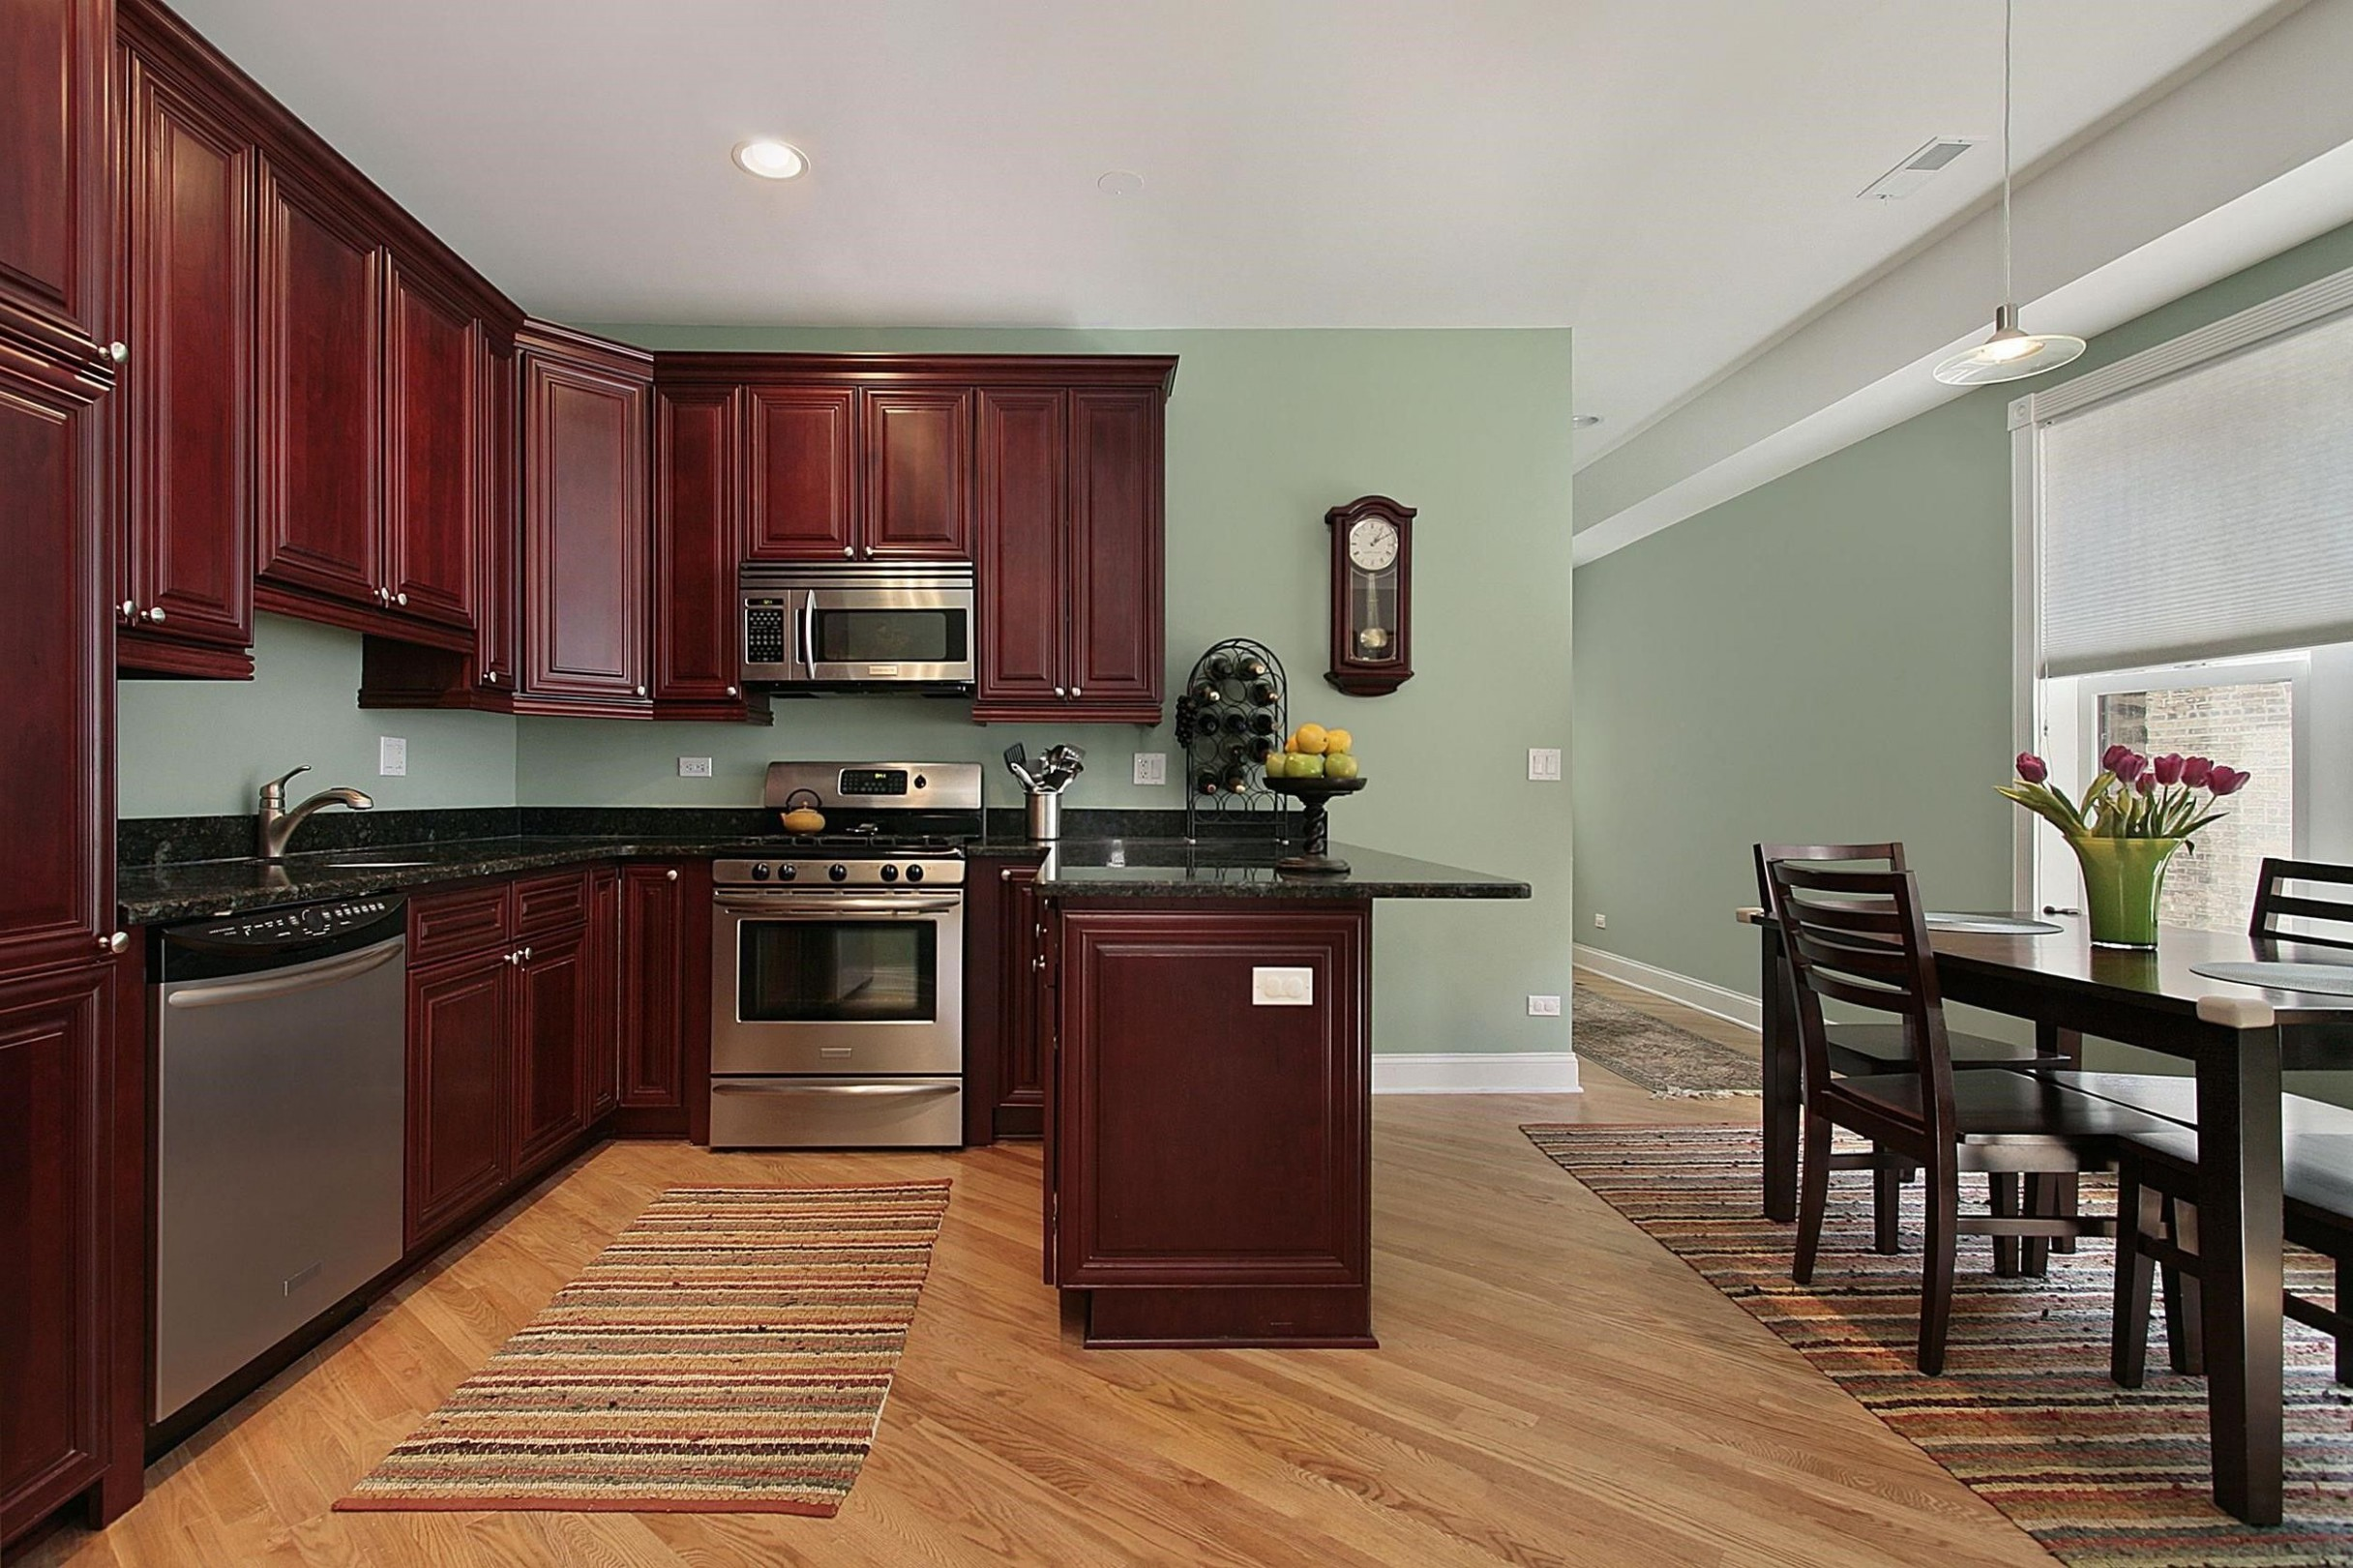 Light Sage Green Paint Colors In Kitchen With Dark Mahogany  - Green Kitchen With Dark Cabinet